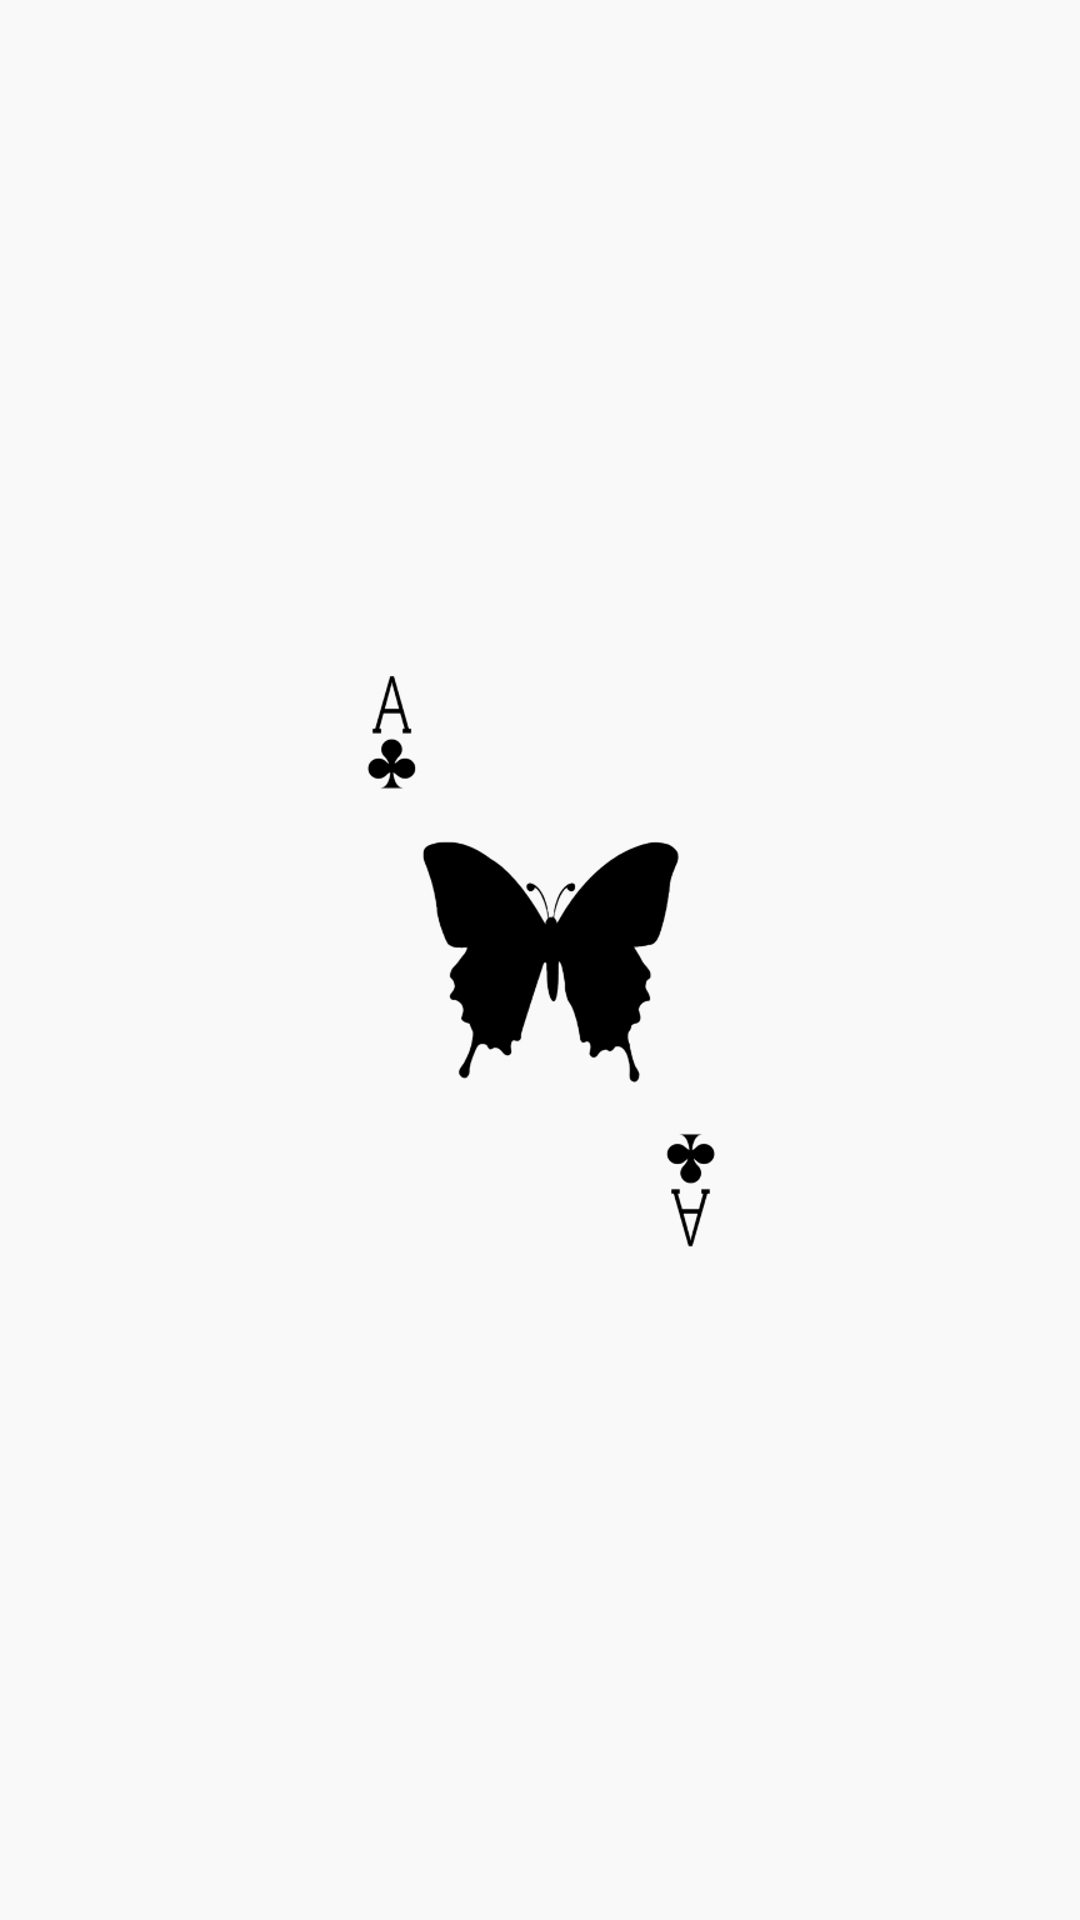 K Pop Bts Cute Wallpapers In 2020 Butterfly Wallpaper Iphone Butterfly Wallpaper Black Aesthetic Wallpaper